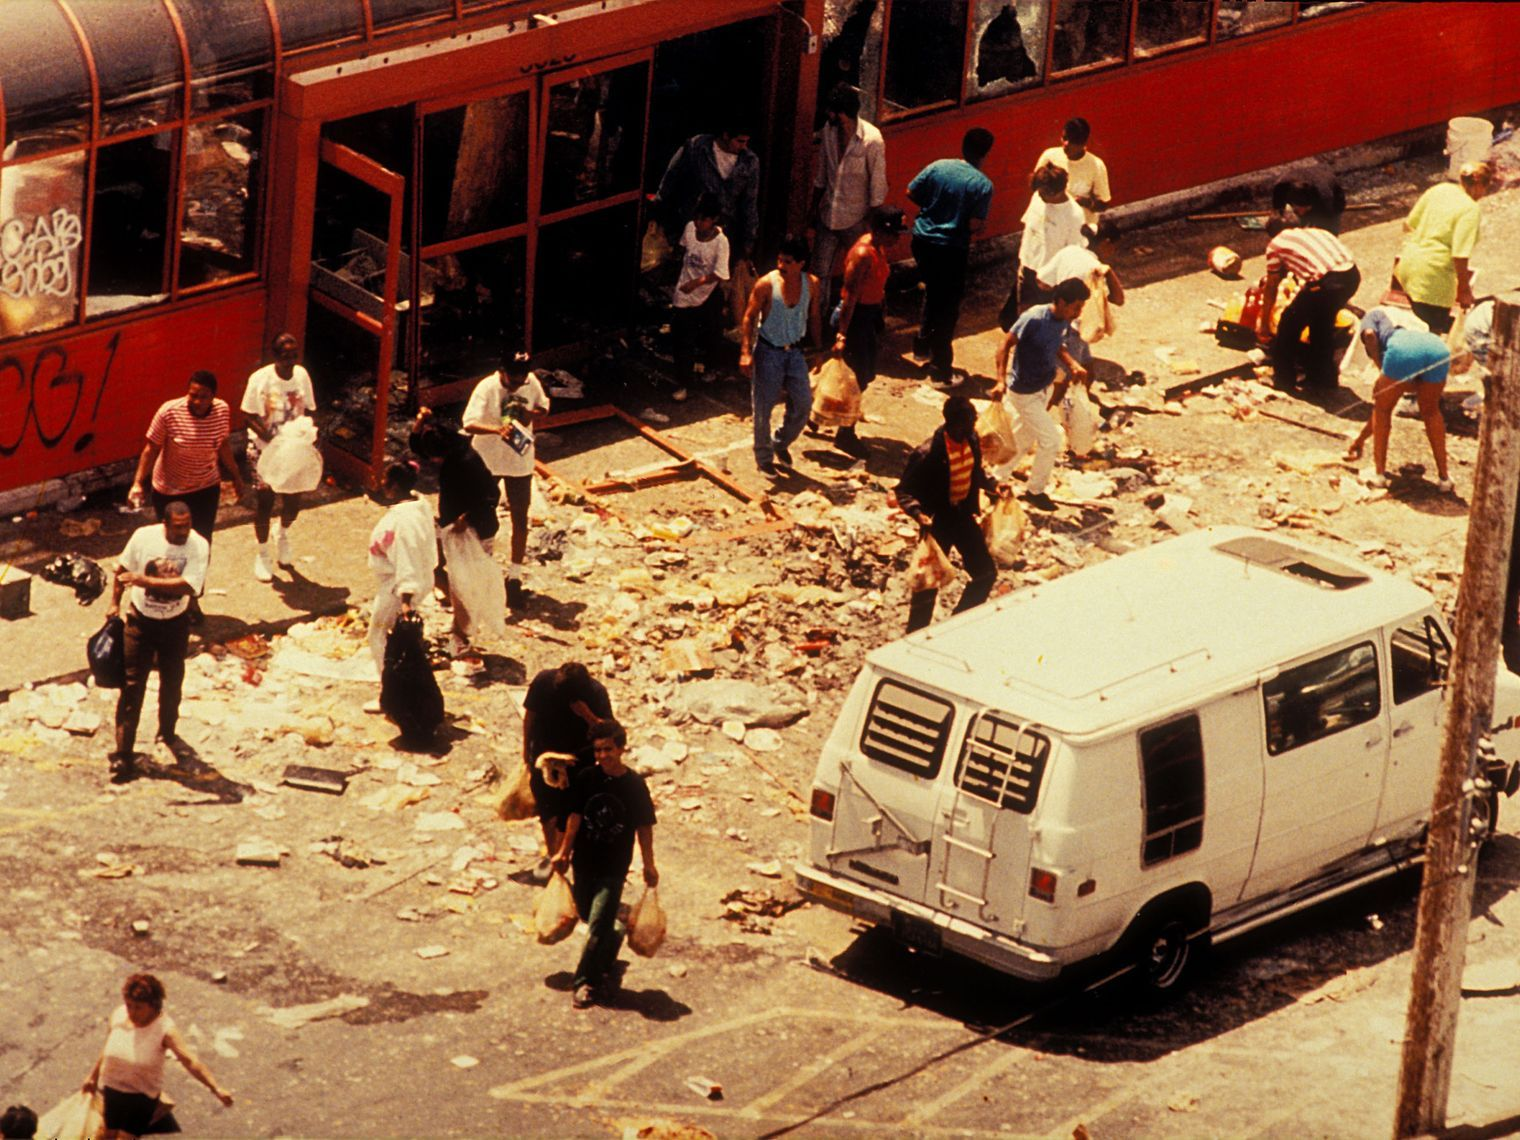 A Map Guide The Major Events And Places That Shaped One Of The Biggest Episodes Of Civil Unrest I Los Angeles History Los Angeles Los Angeles Police Department